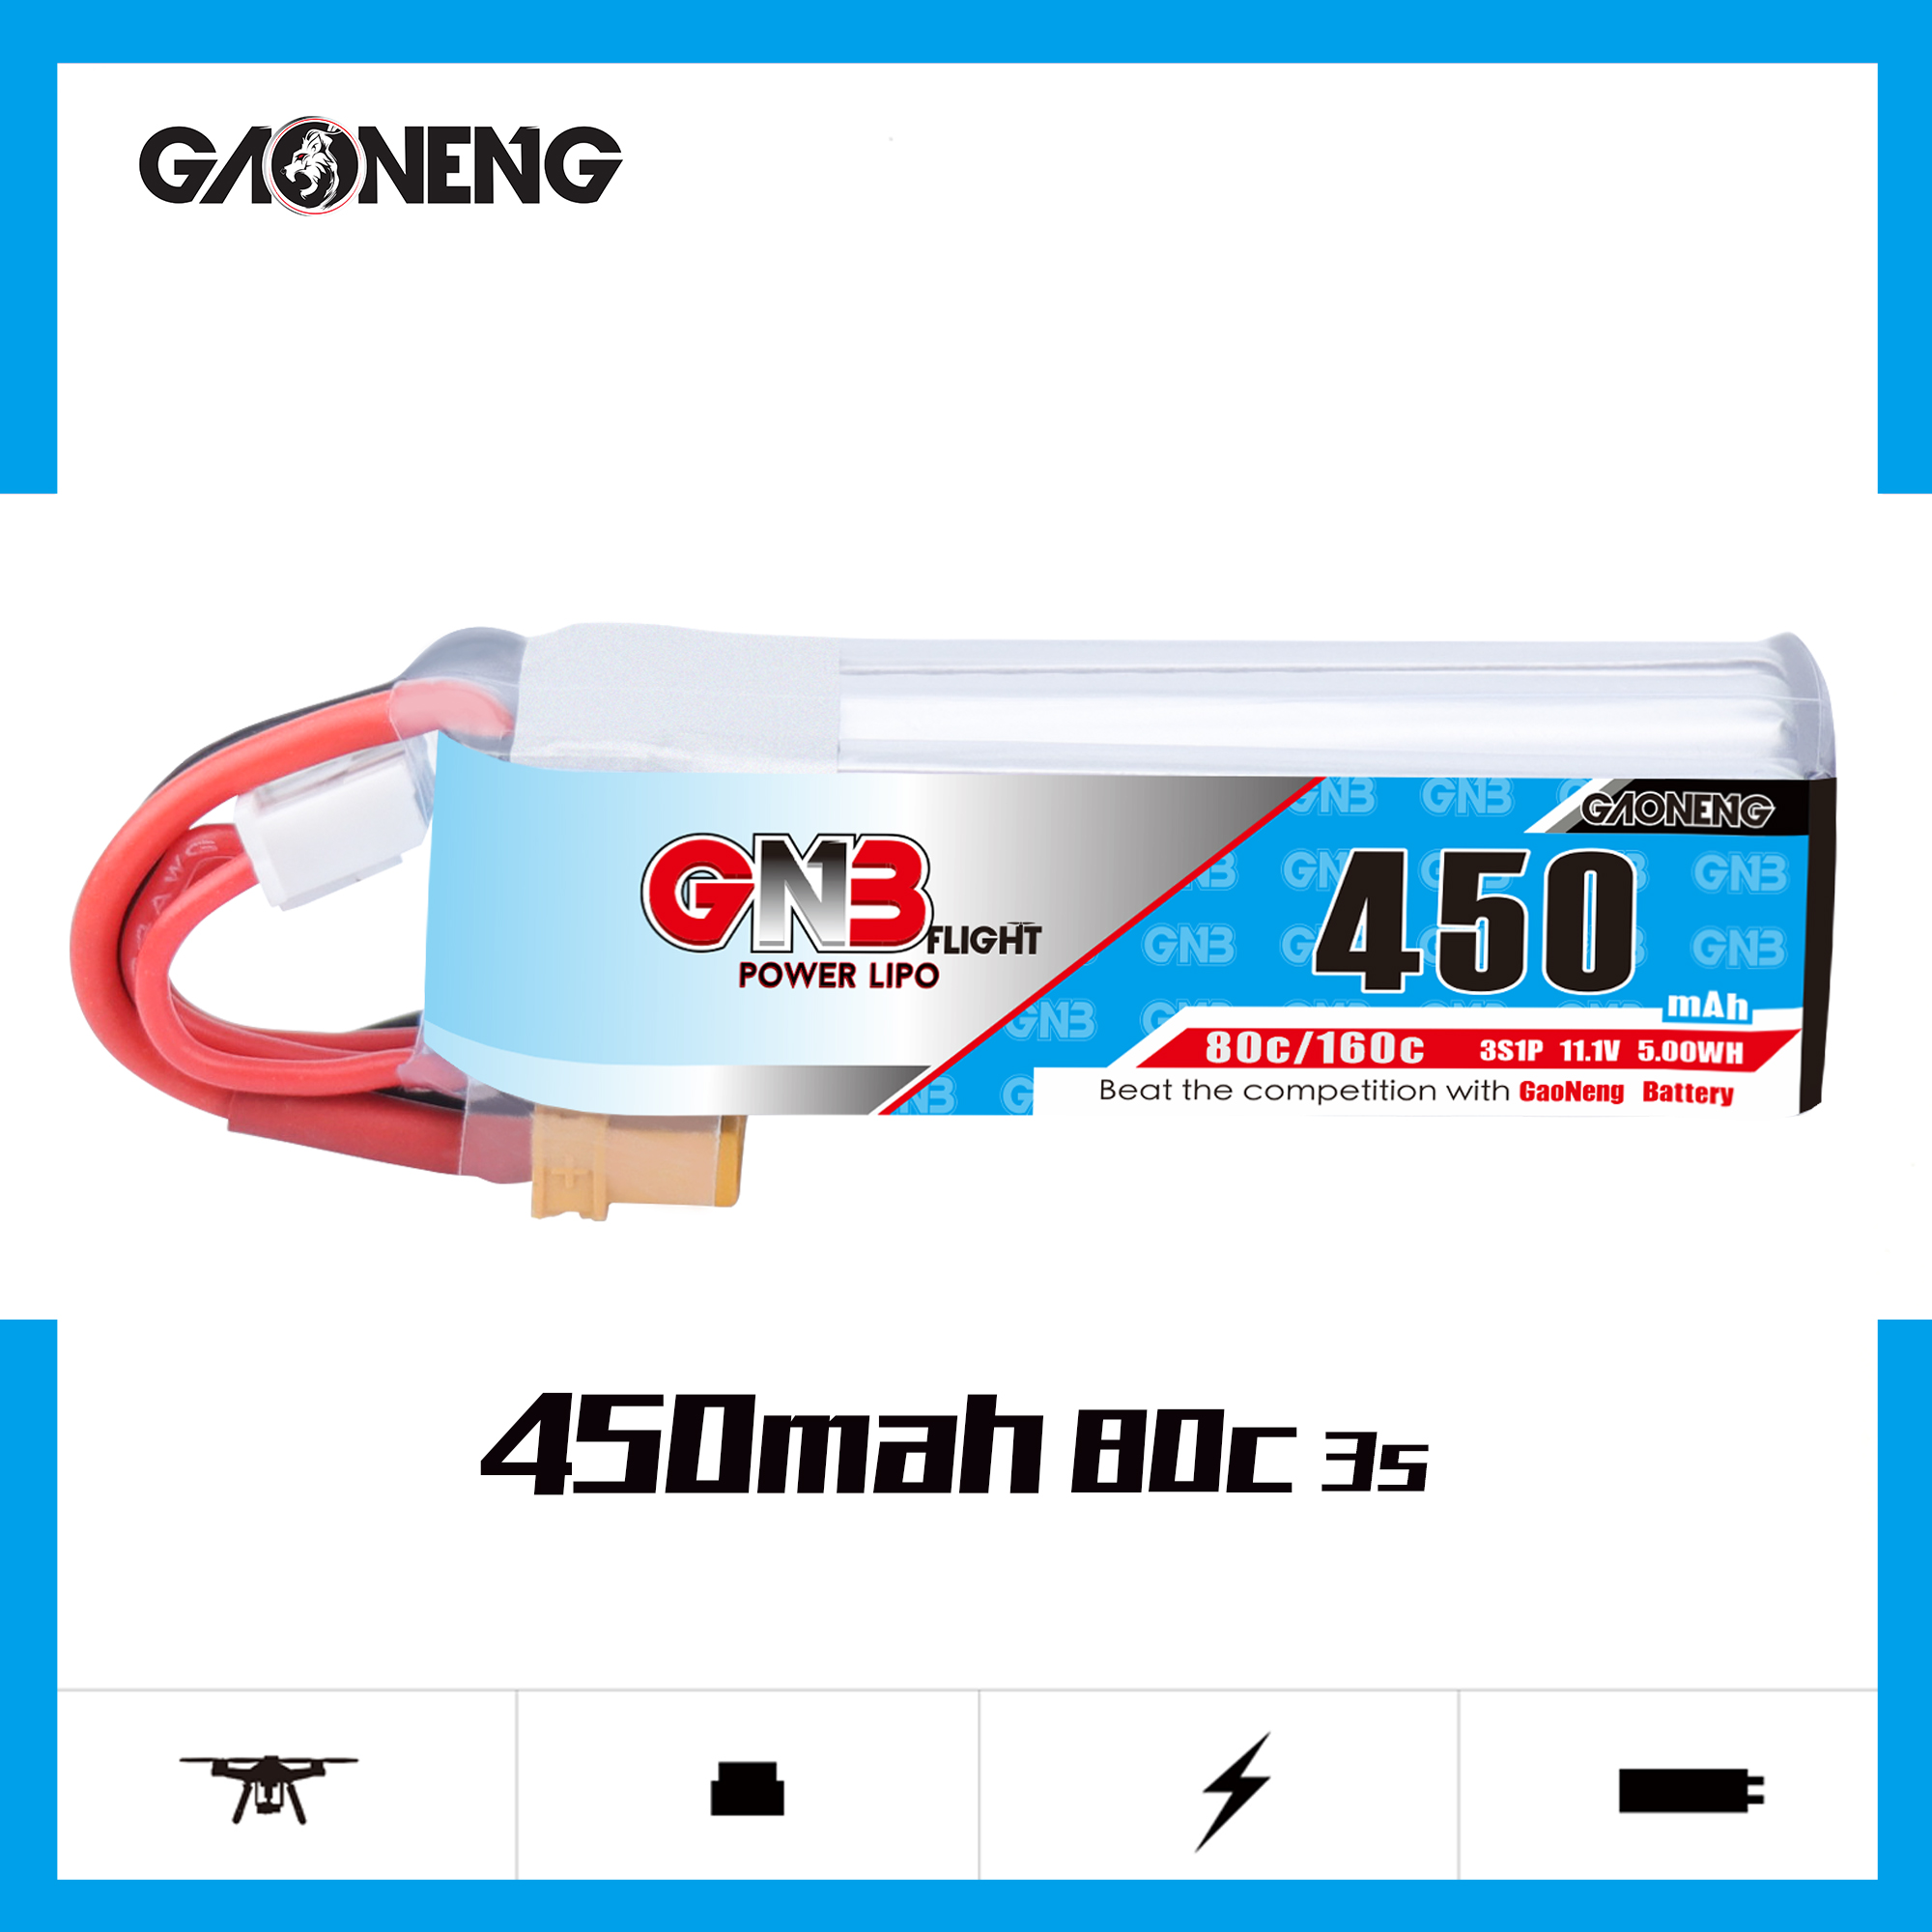 Gaoneng GNB 2S 3S 11.1V 4S 14.8V 450MAH 80C Lipo Battery XT30 Plug for RC CineBee Cine Whoop BetaFPV Quadcopter Toothpick Drone image